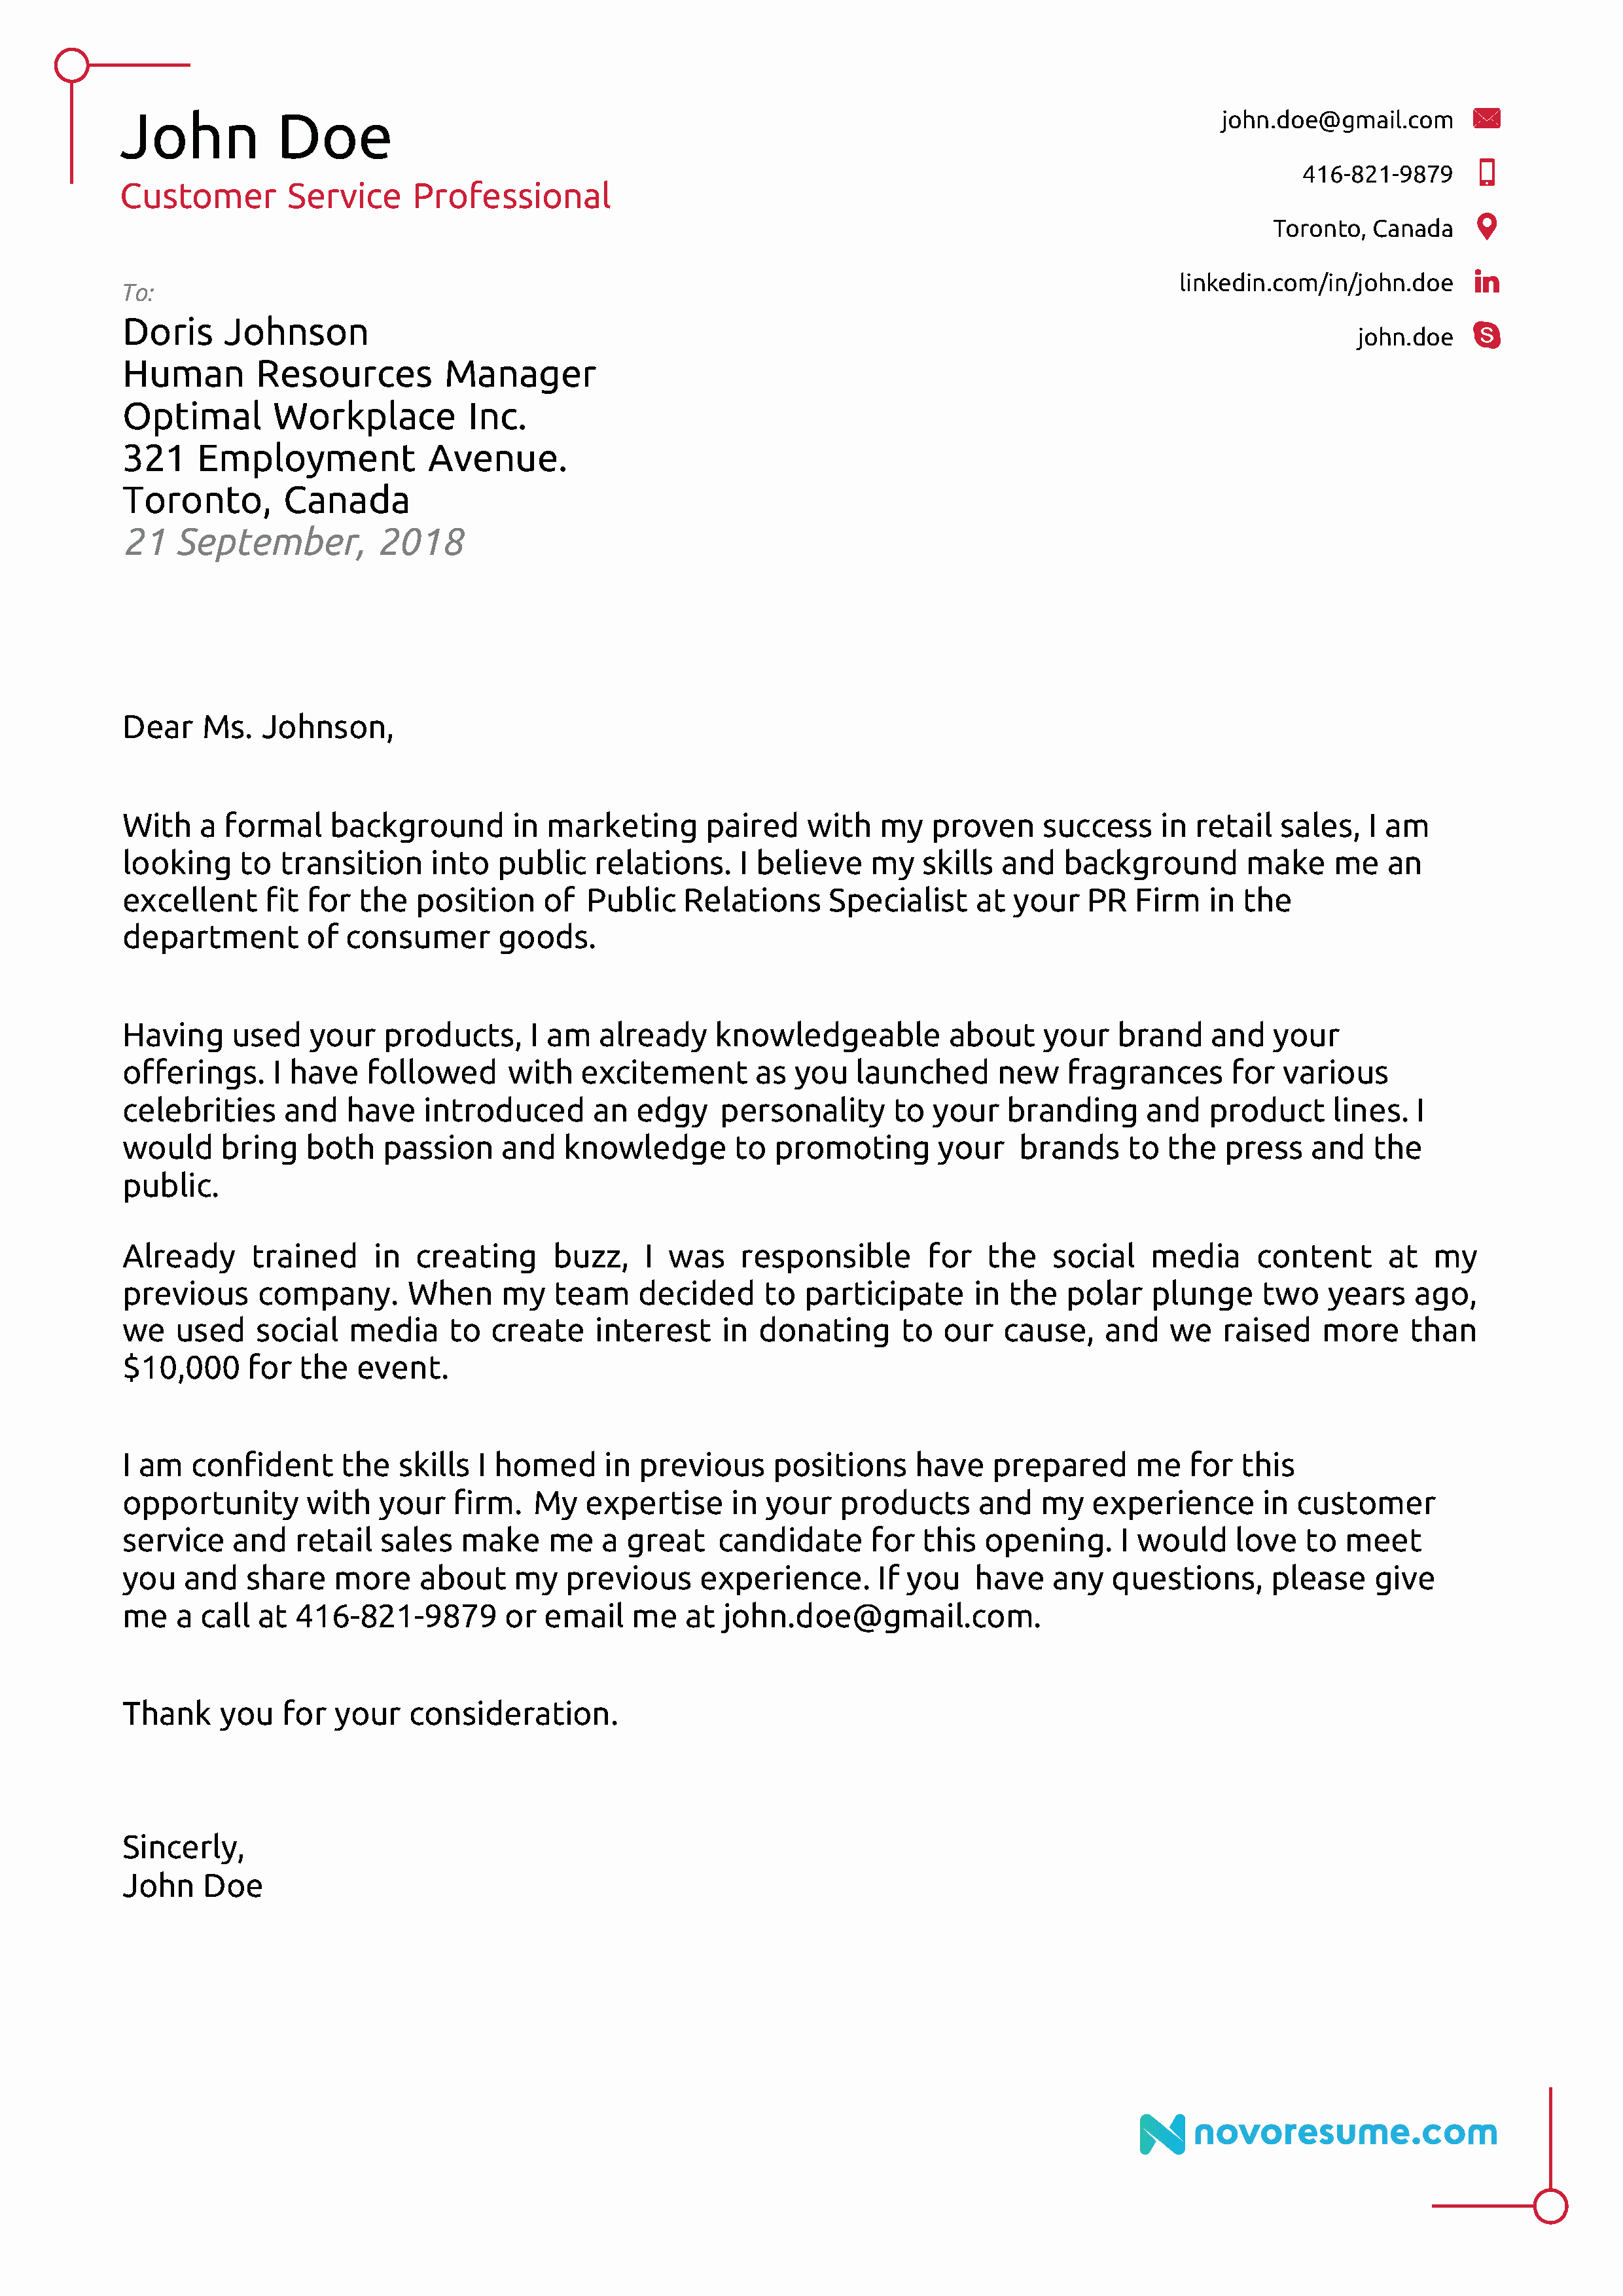 Cover Letter for New Career Luxury 2018 Cover Letter Examples [ Writing Tips]